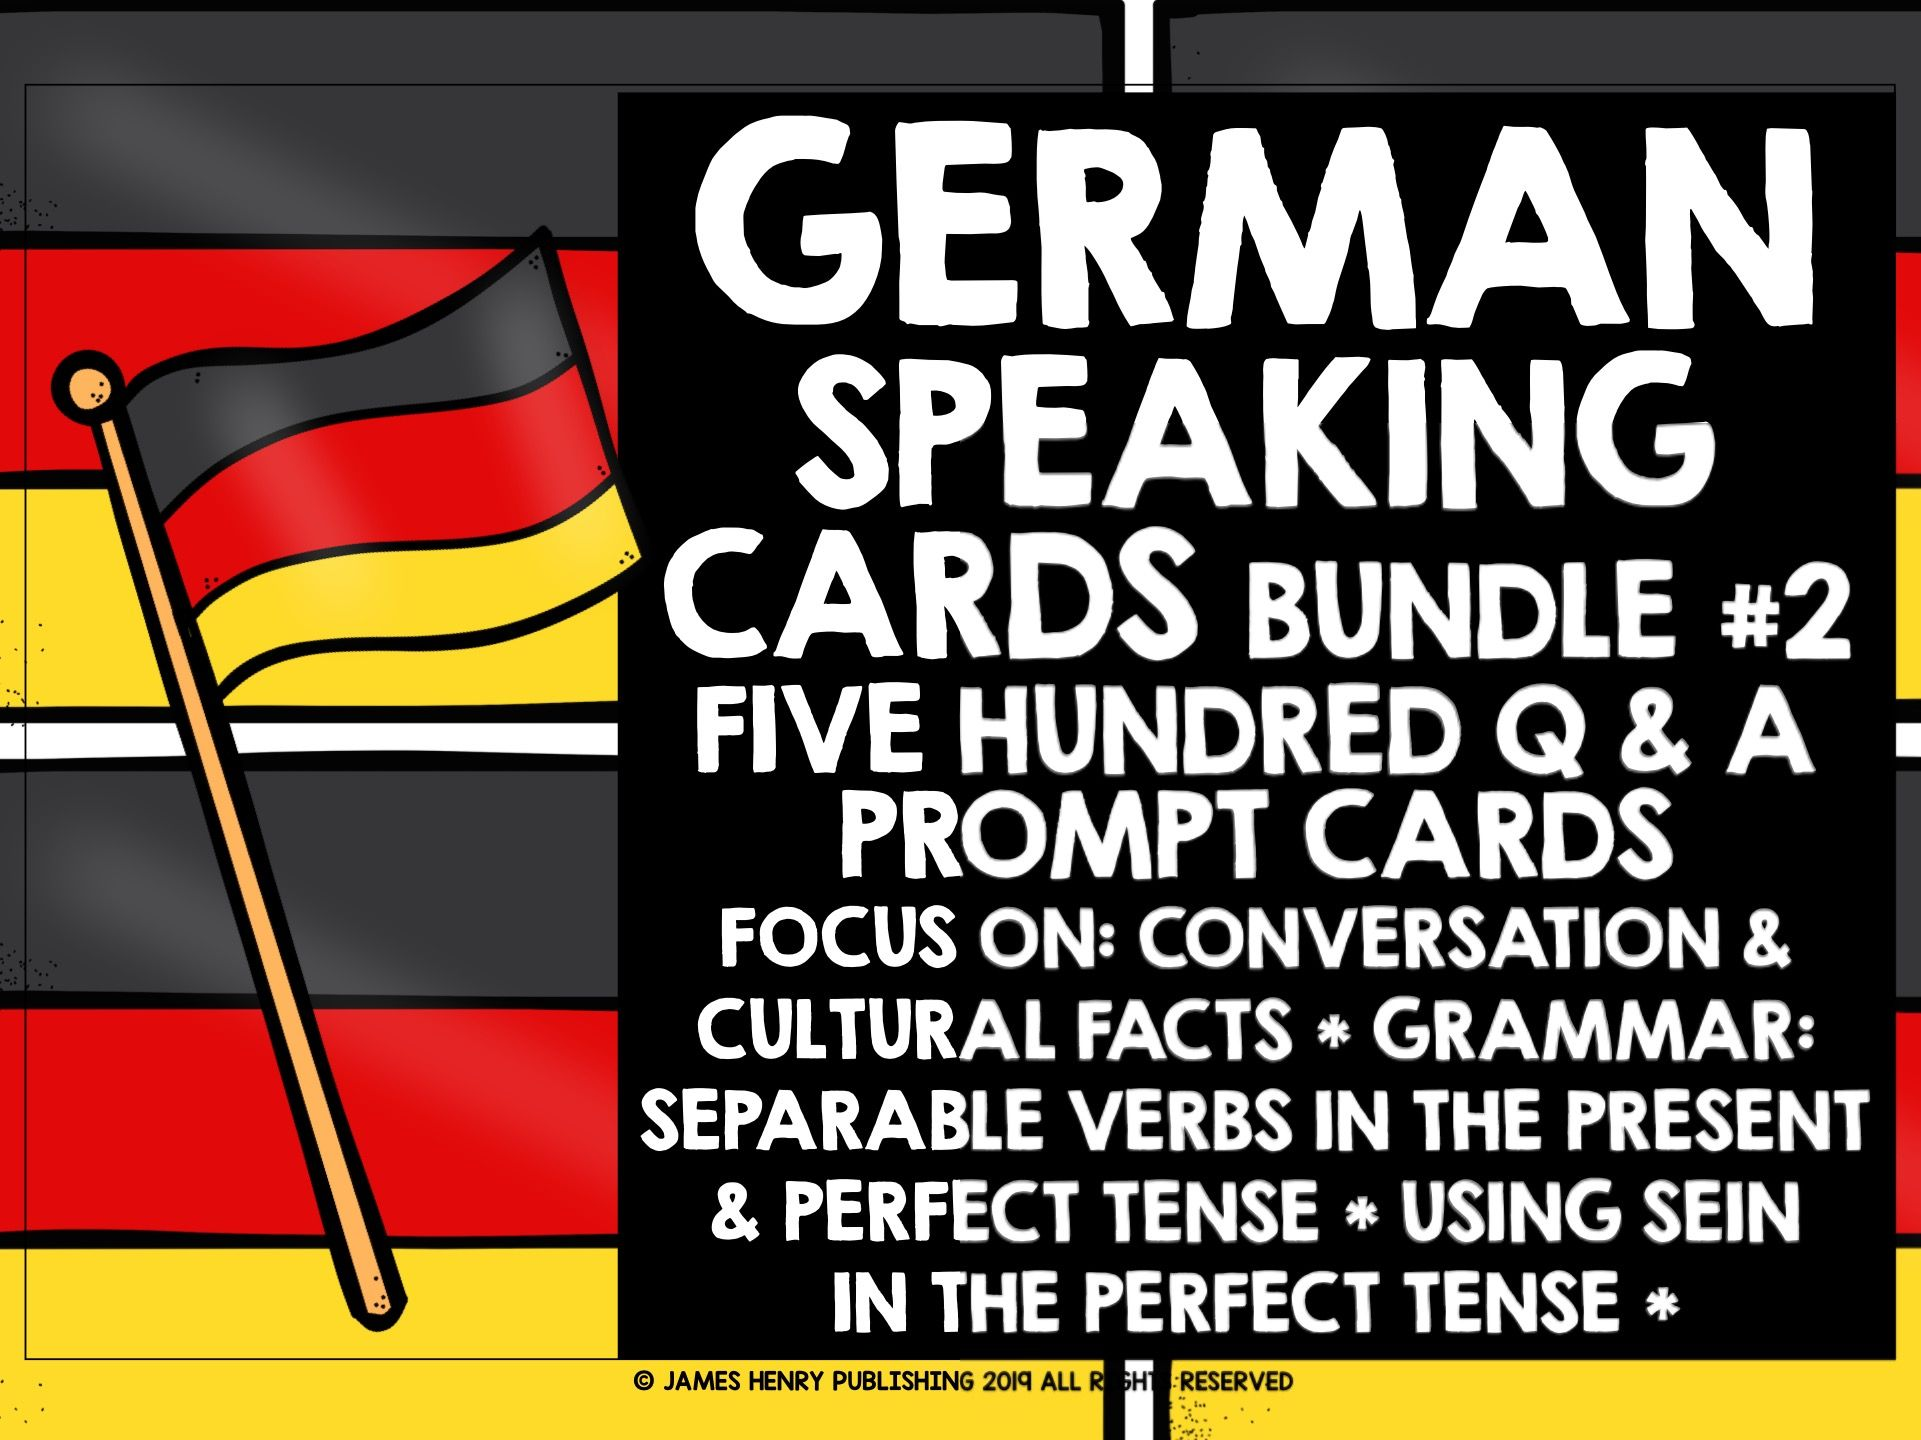 GERMAN SPEAKING PRACTICE BUNDLE #2